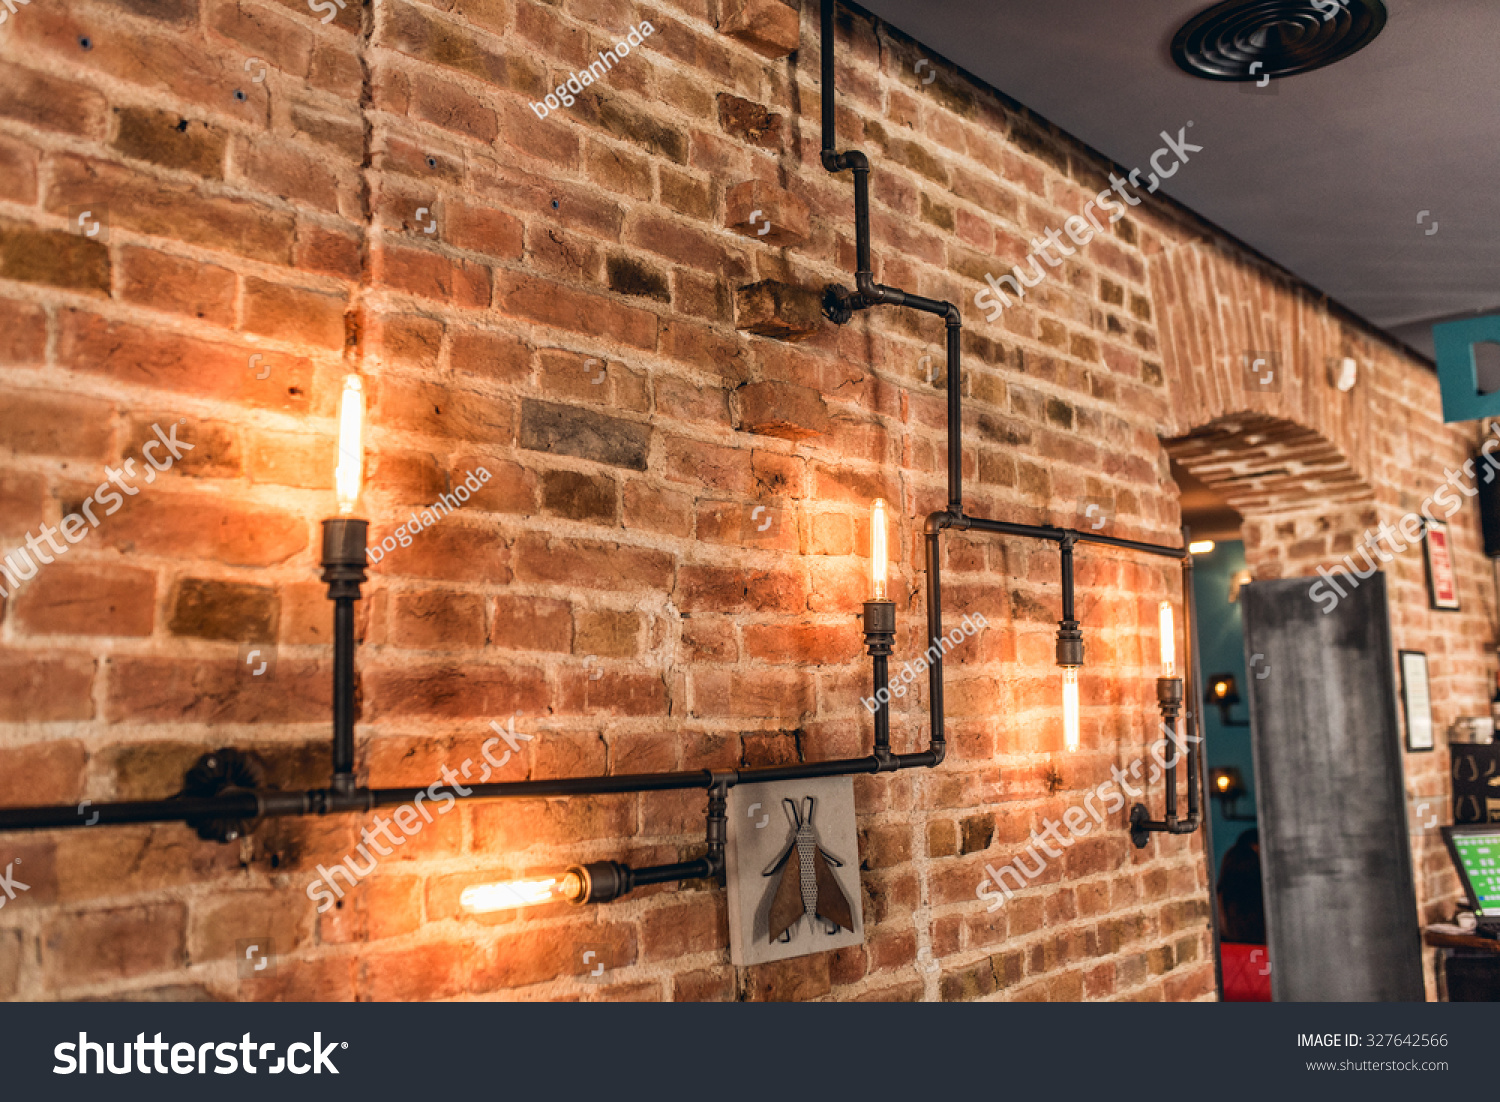 Restaurant Rustic Walls Vintage Interior Design Lamps Metal Pipes And Light Bulbs